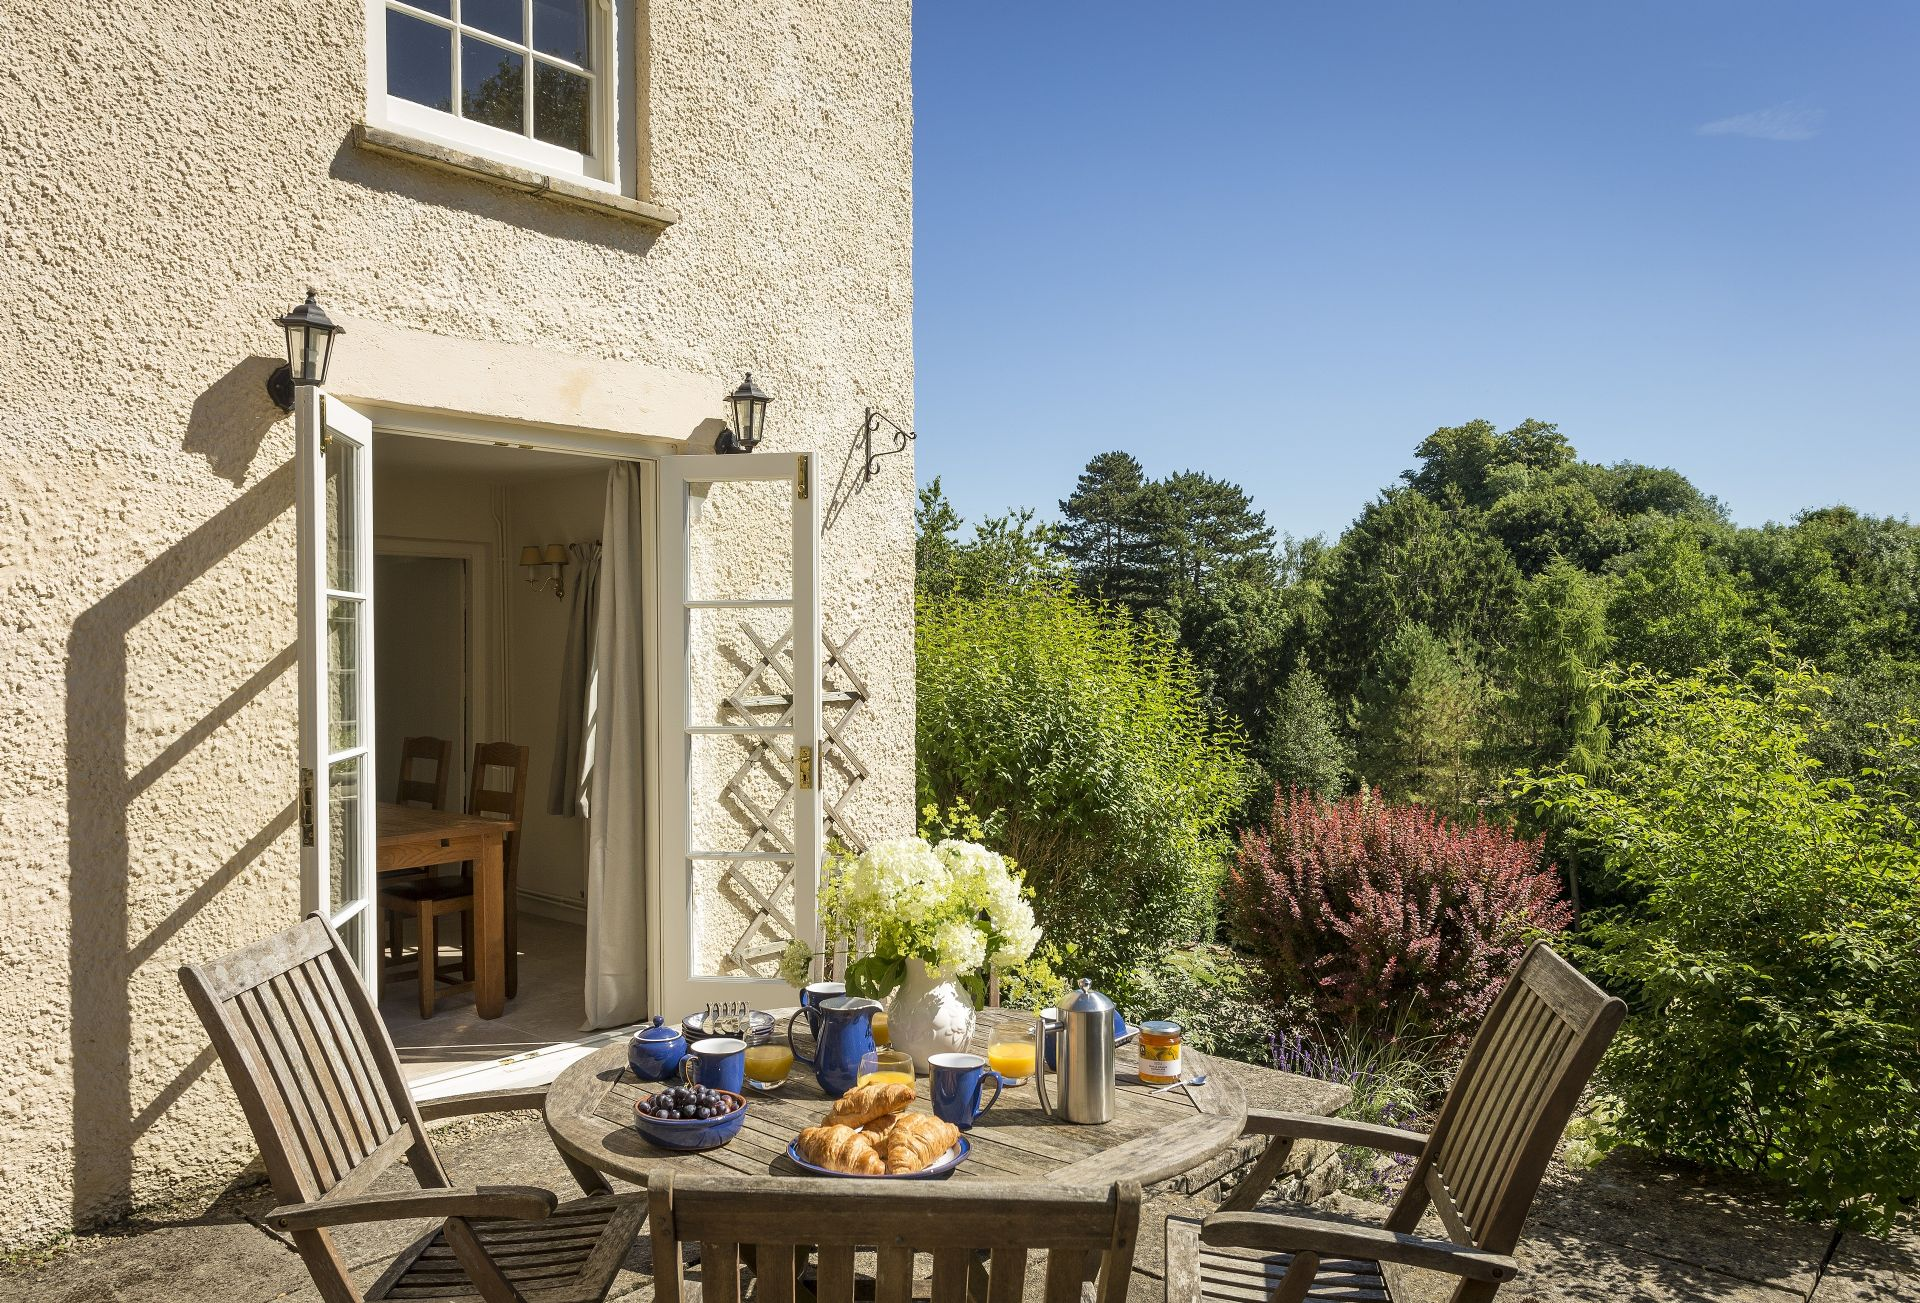 Exterior ground floor: French doors leading out to the outdoor entertaining area